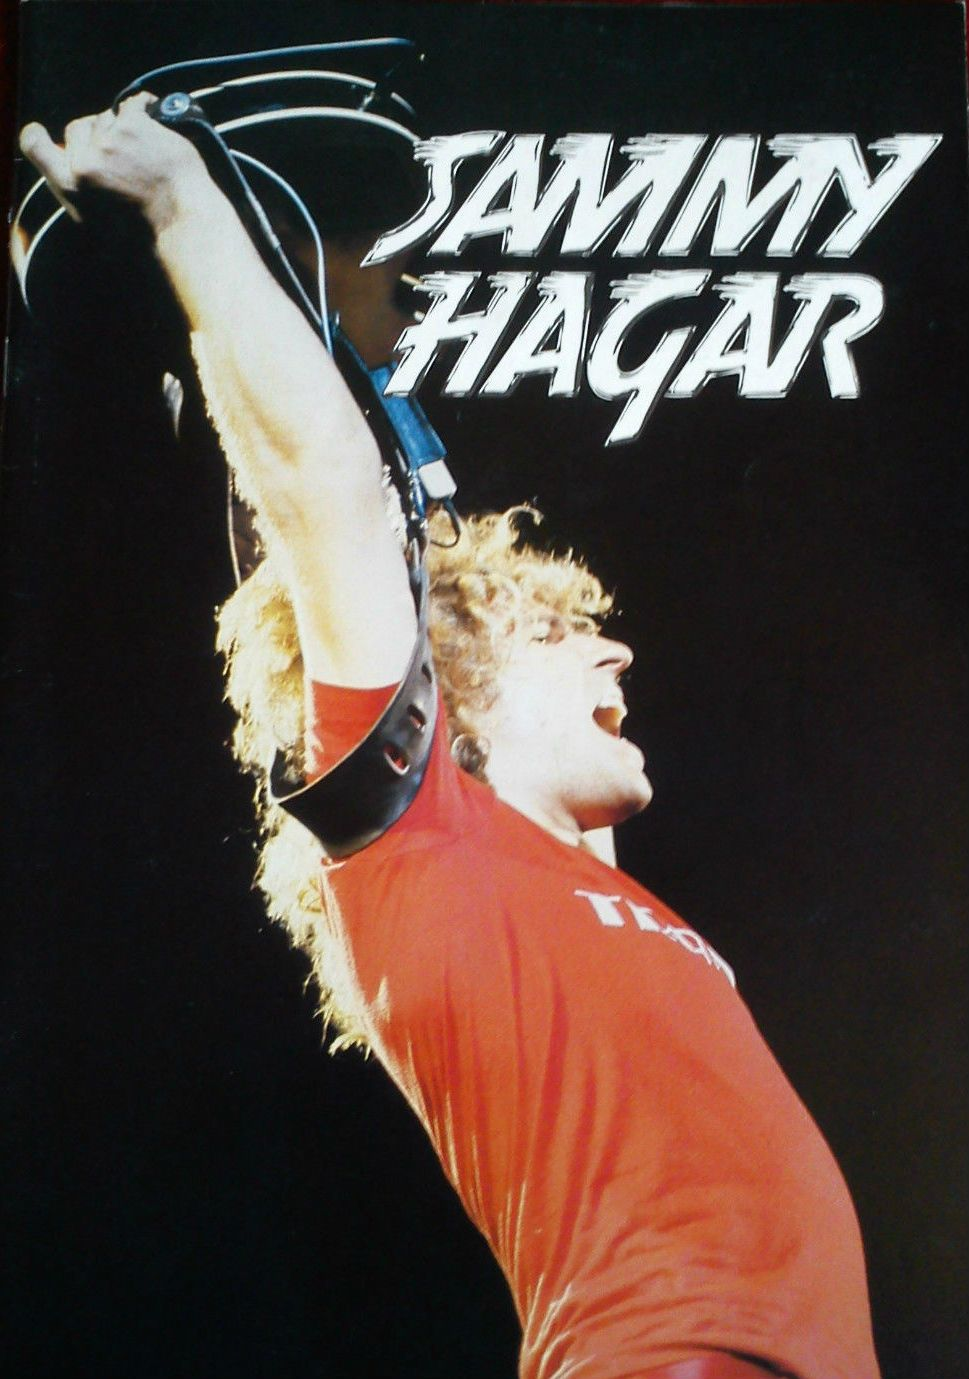 Sammy Hagar Tour Program Https Www Facebook Com Fromthewaybackmachine Sammy Hagar Van Halen Rock Videos